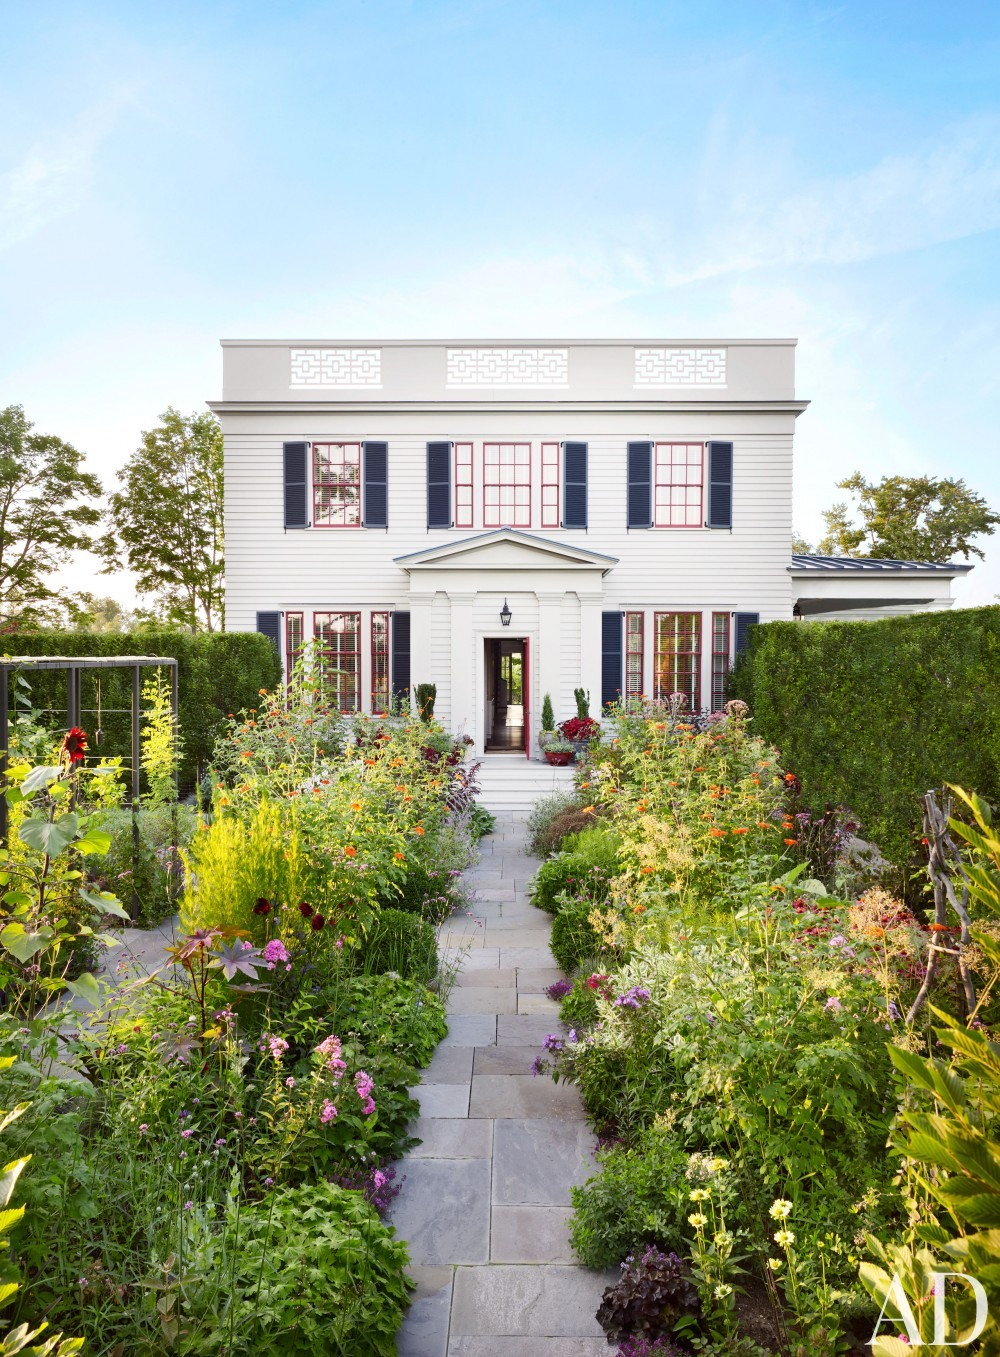 Traditional Exterior by Katie Ridder and Peter Pennoyer in Millbrook, NY